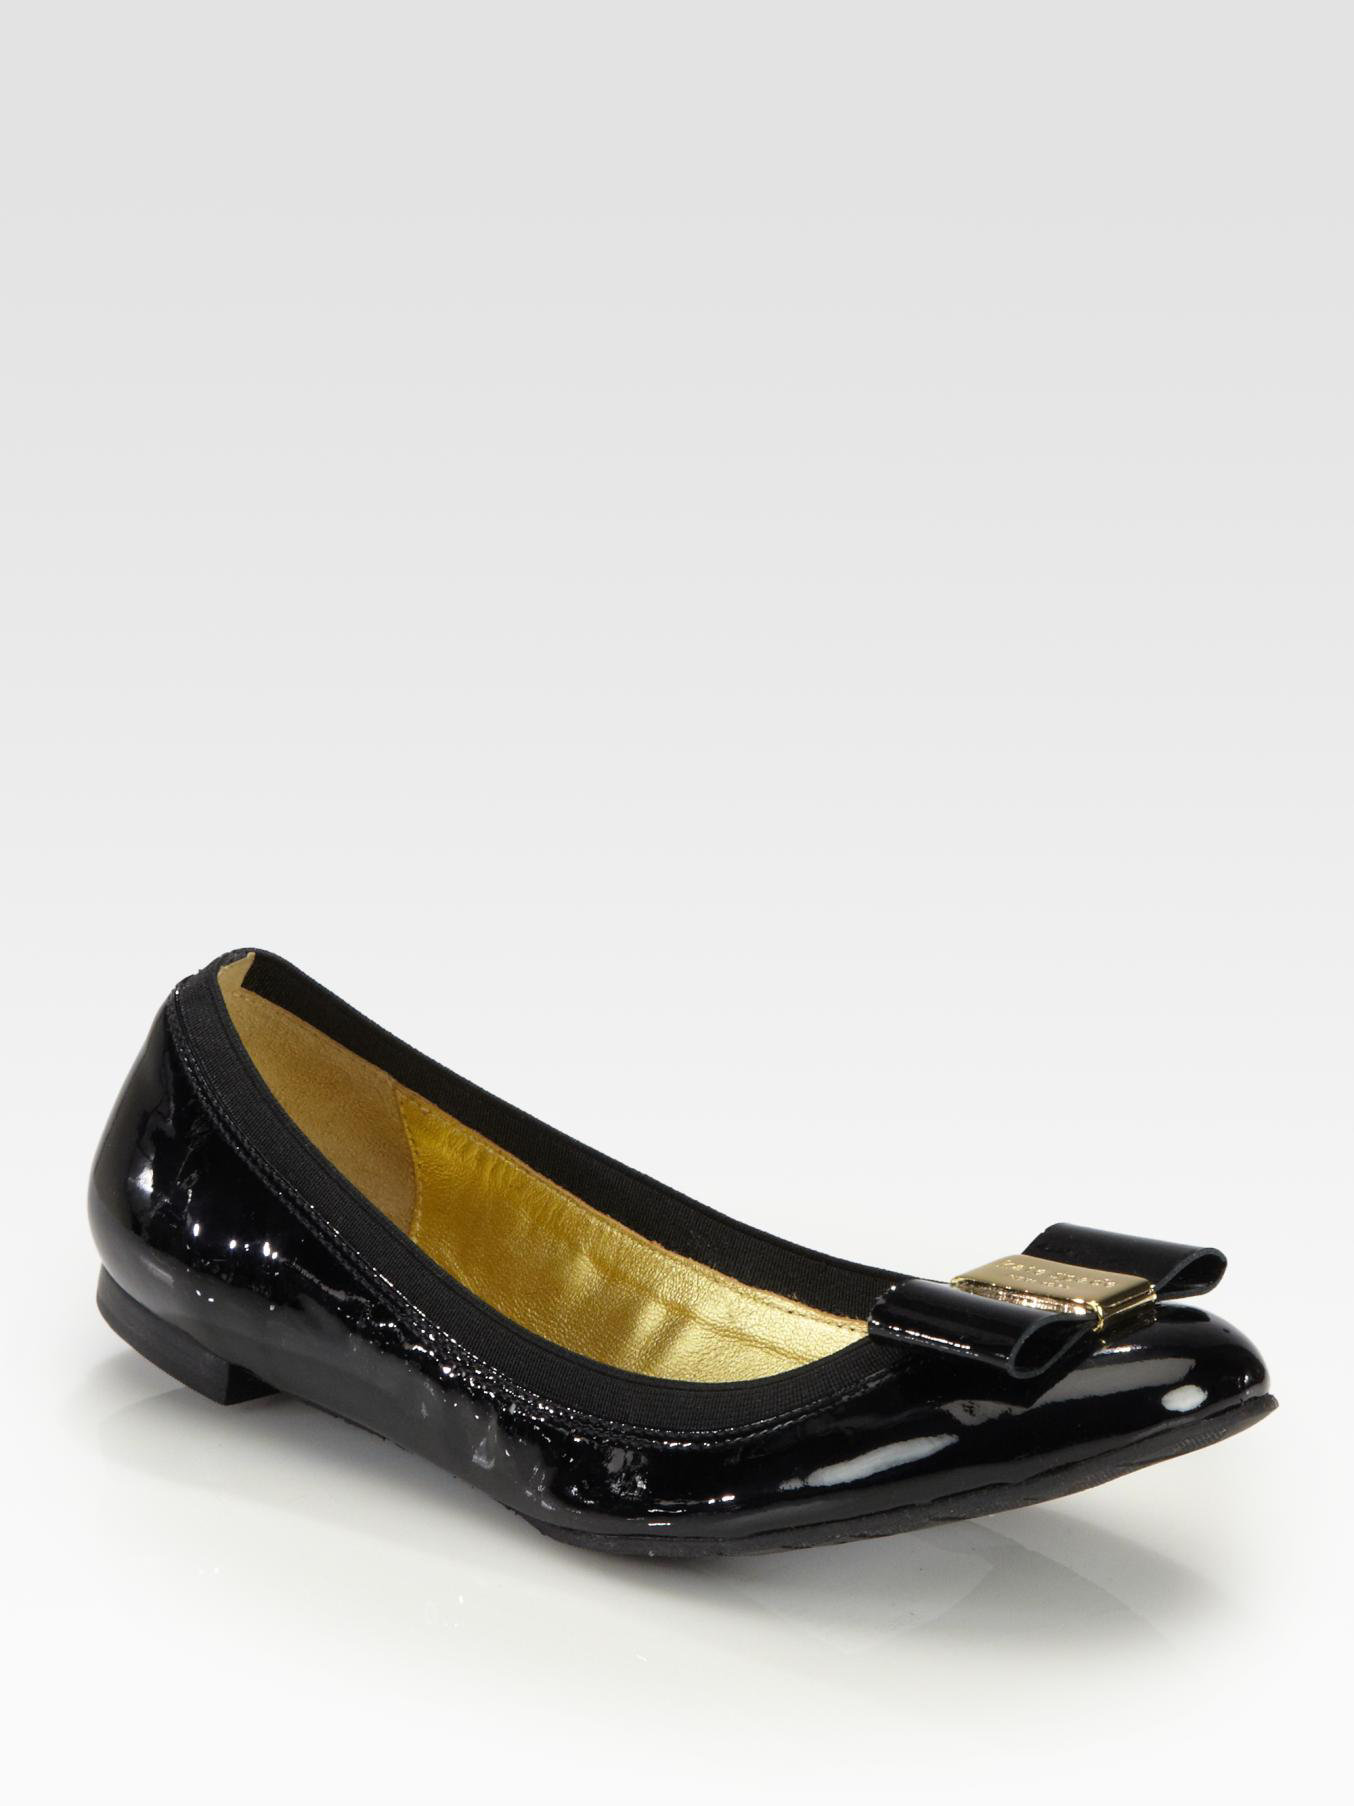 9963a2dfd1ba kate spade new york - Black Tock Patent Leather Bow Ballet Flats - Lyst